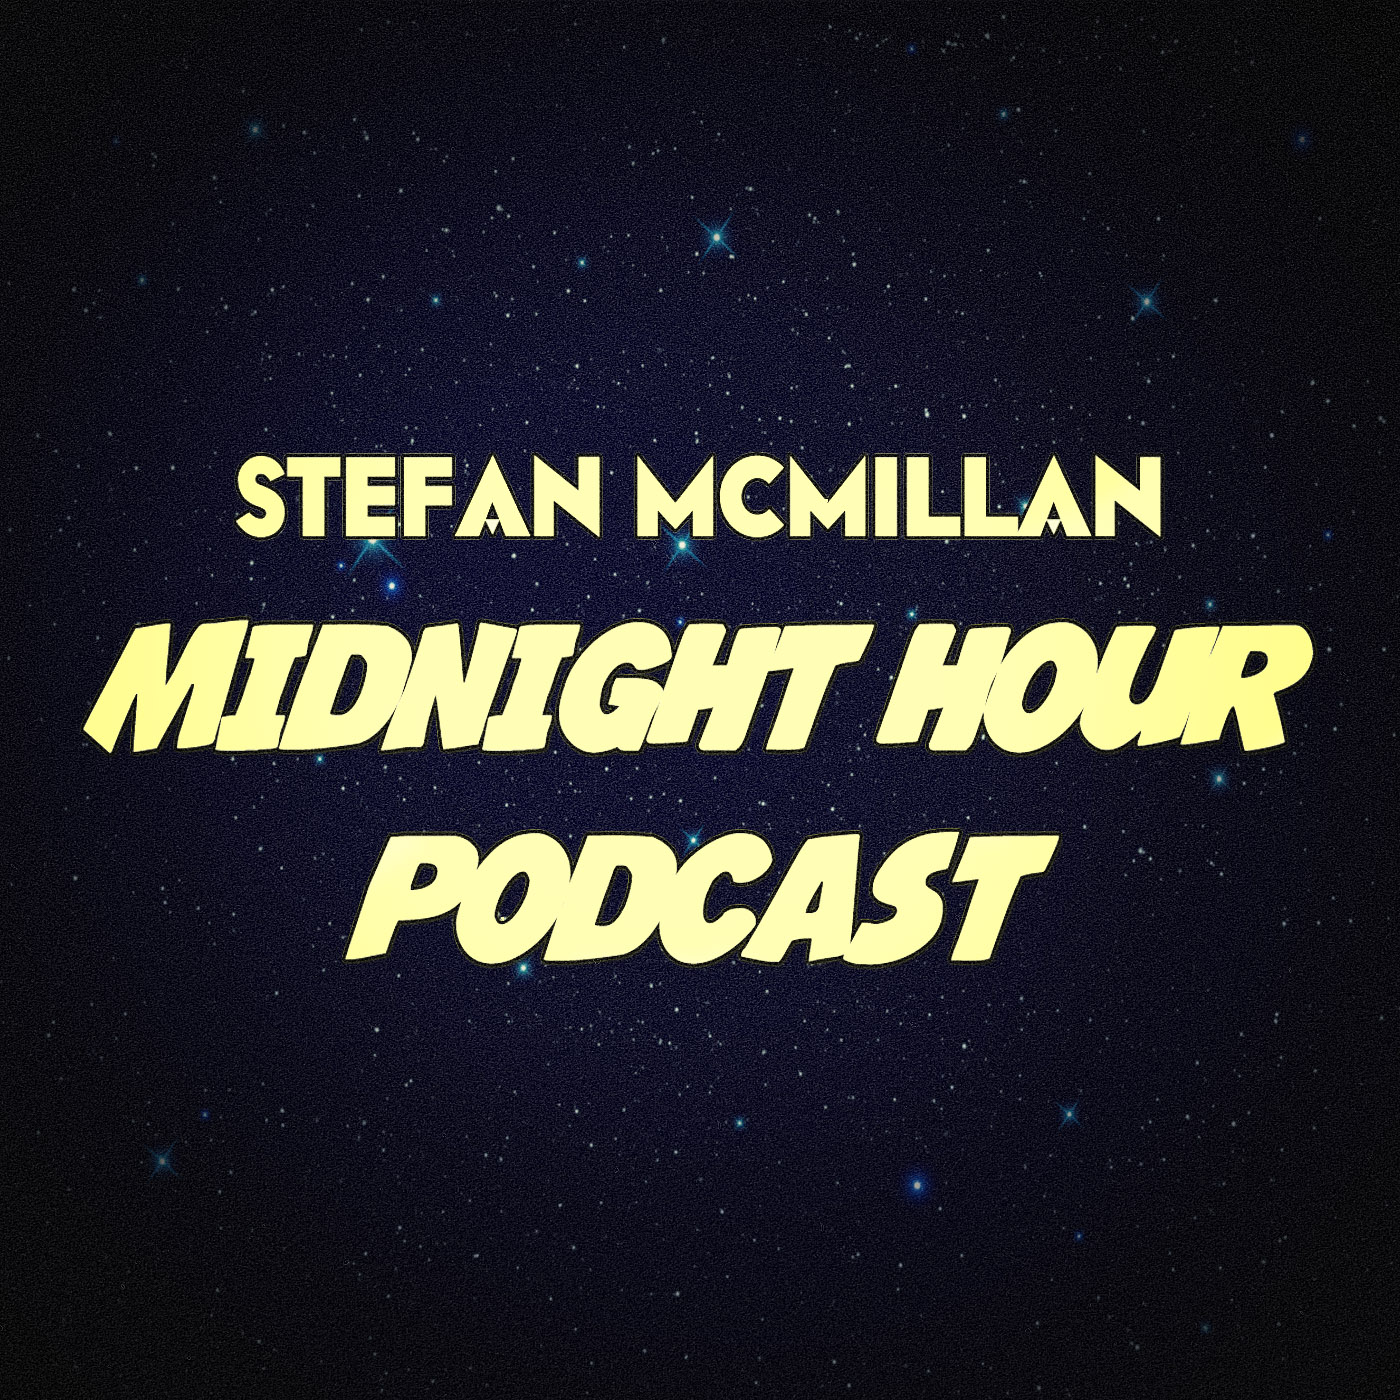 Midnight Hour Podcast